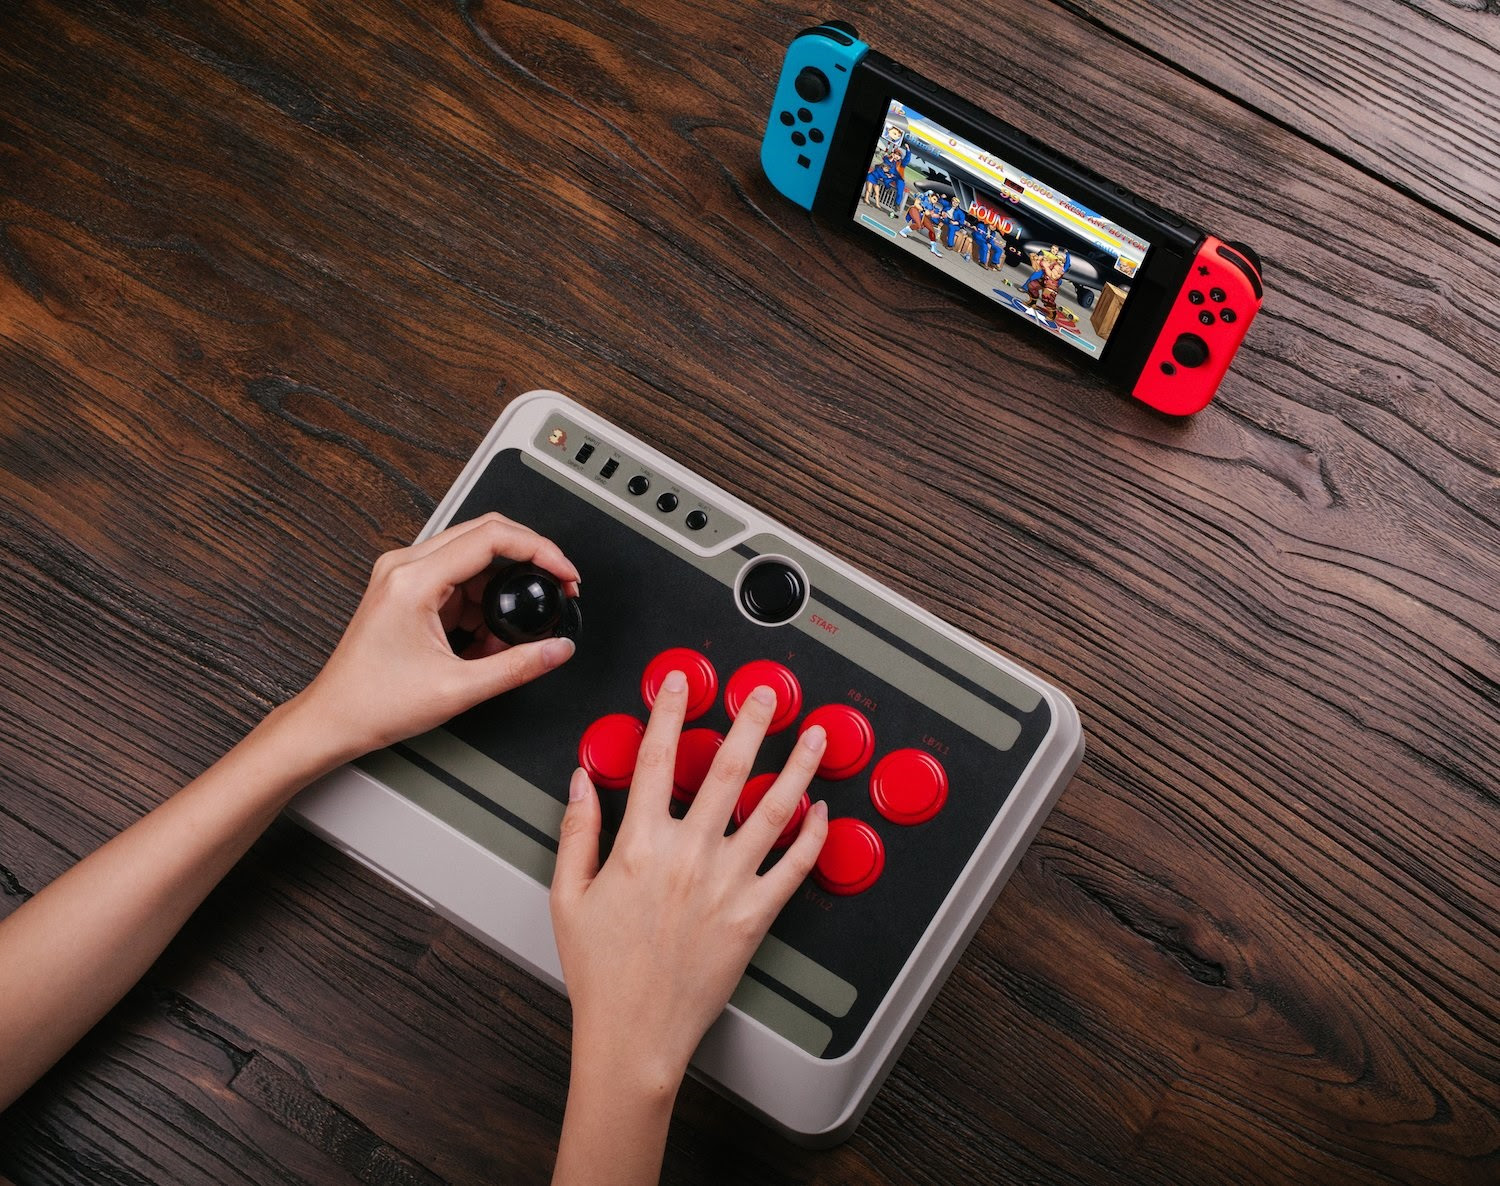 The Switch finally has an arcade stick with 8bitdo's new controllers screenshot